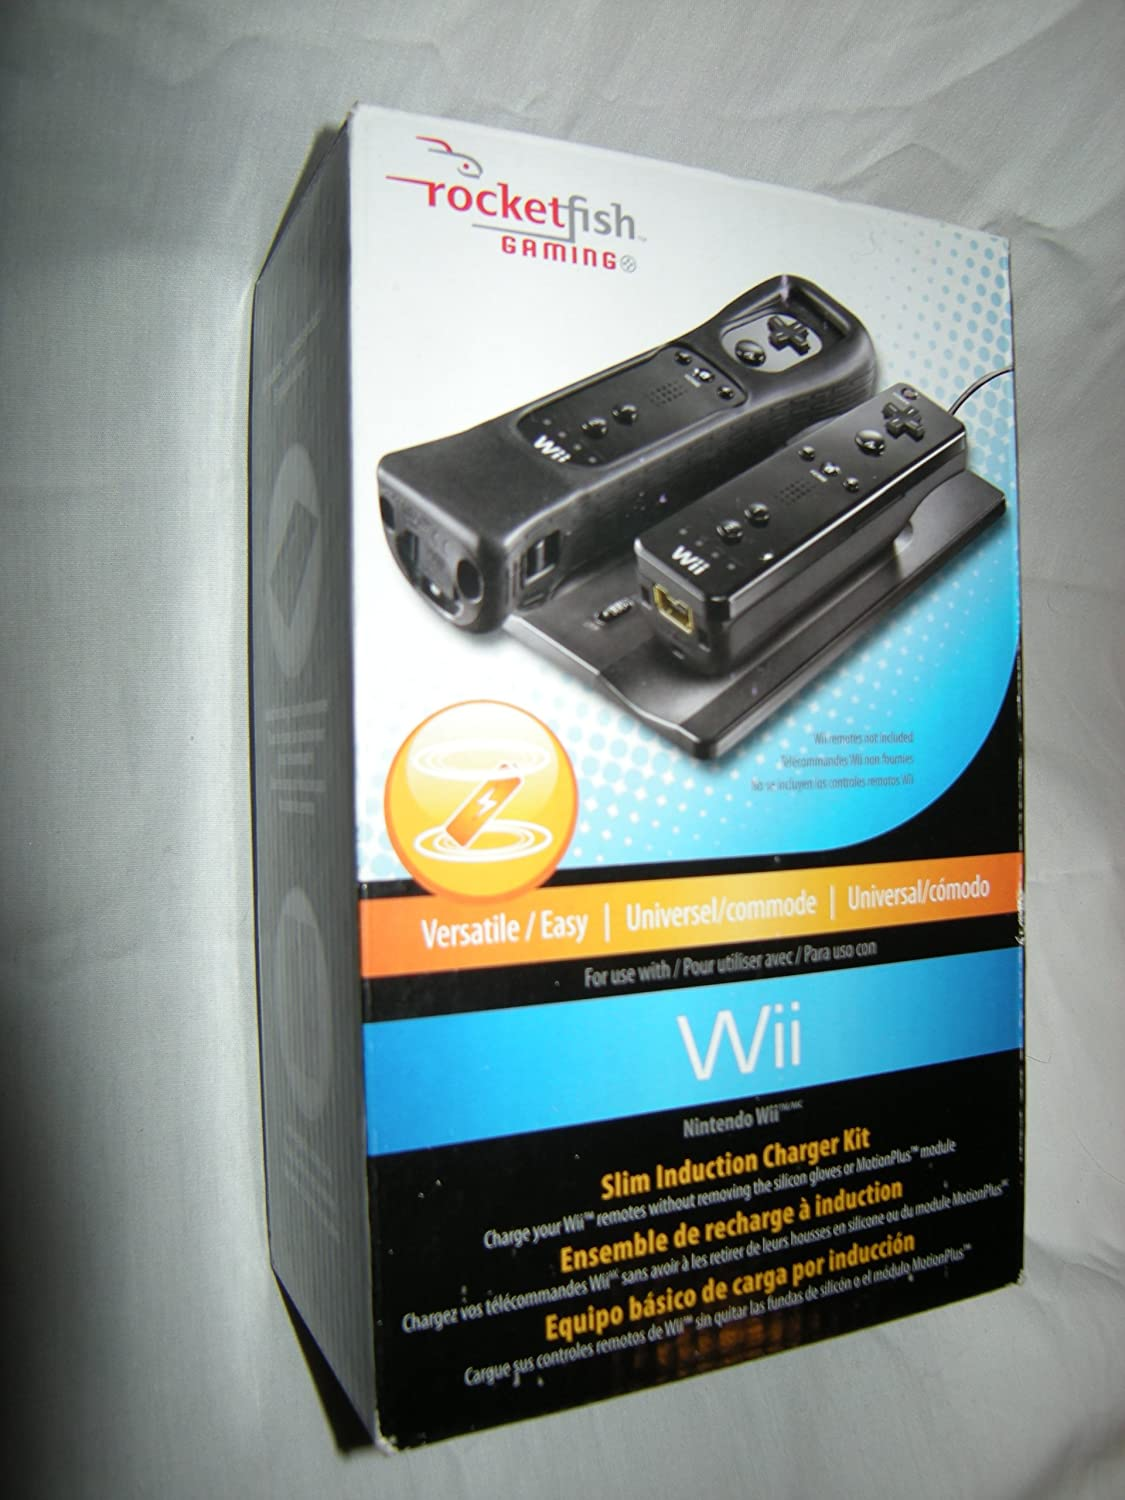 Wii Slim Induction Charger Kit